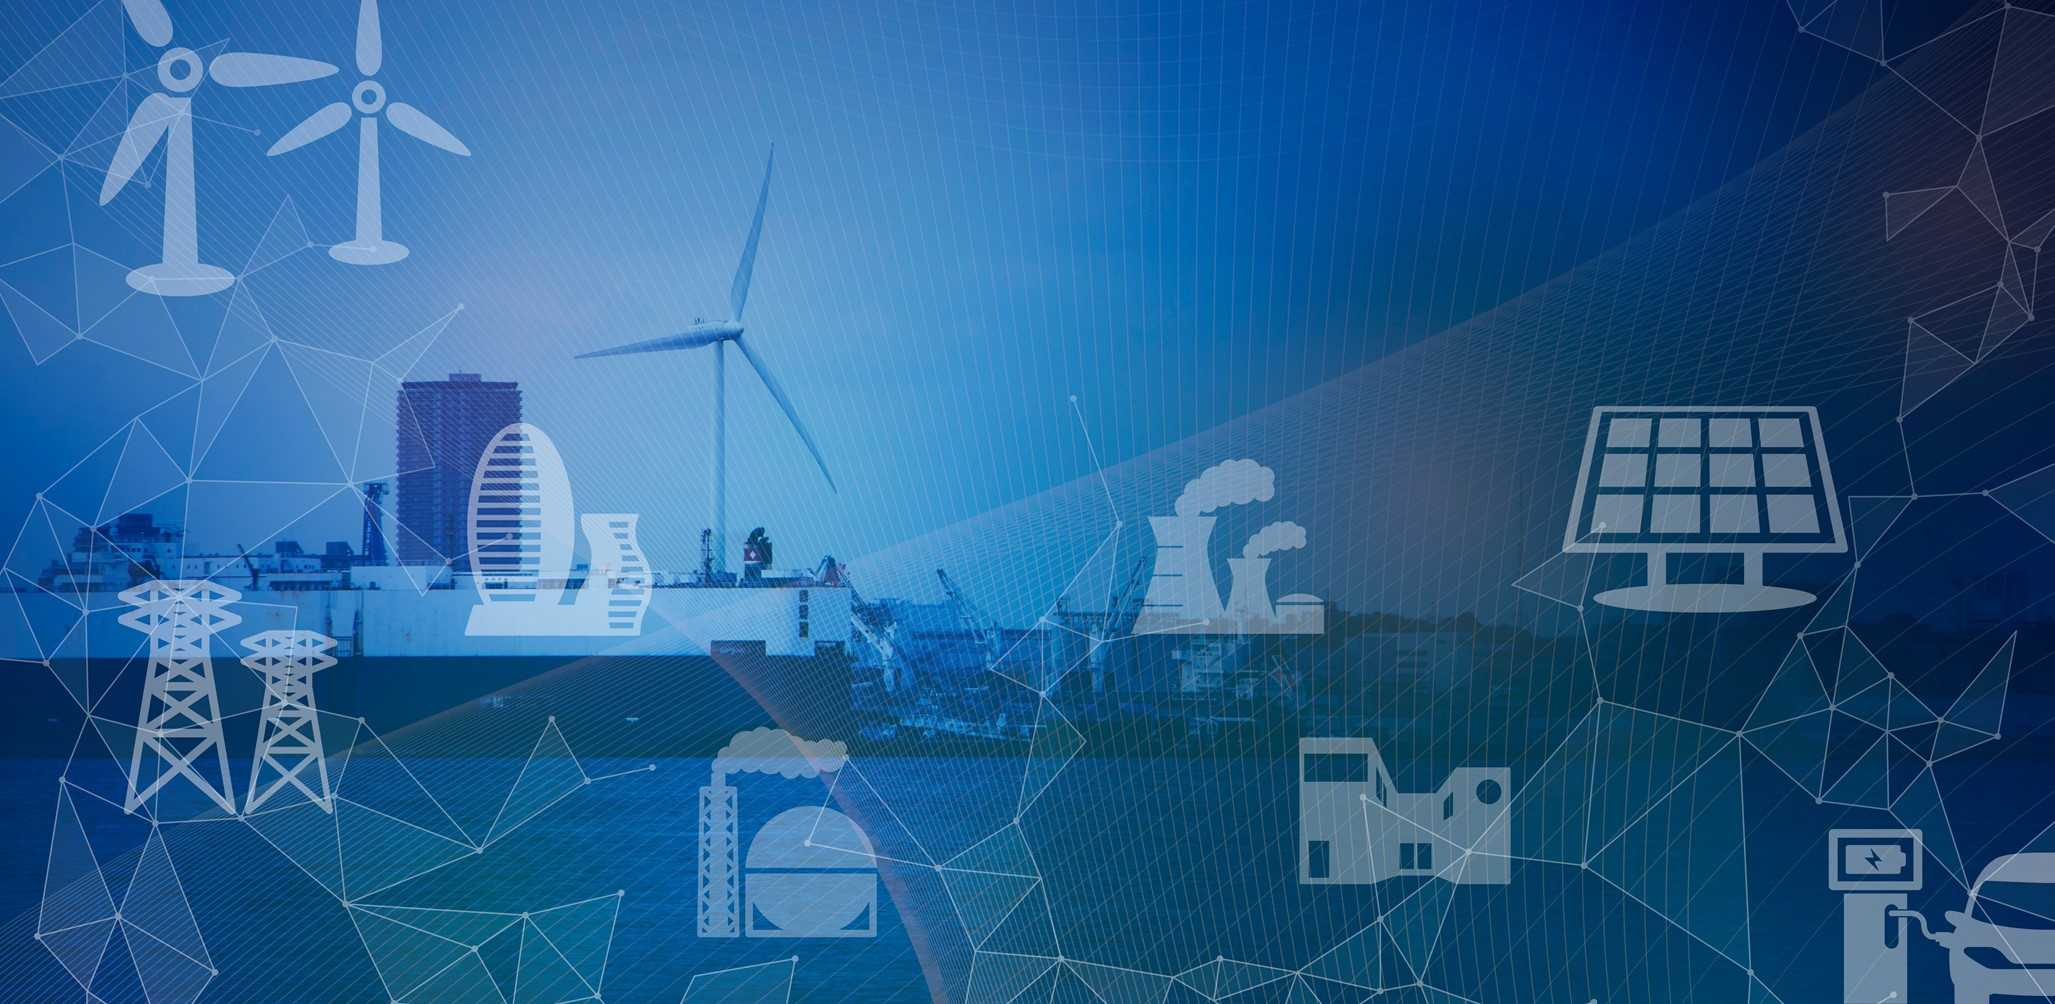 Iot and Utilities: The Real Currency Of Change